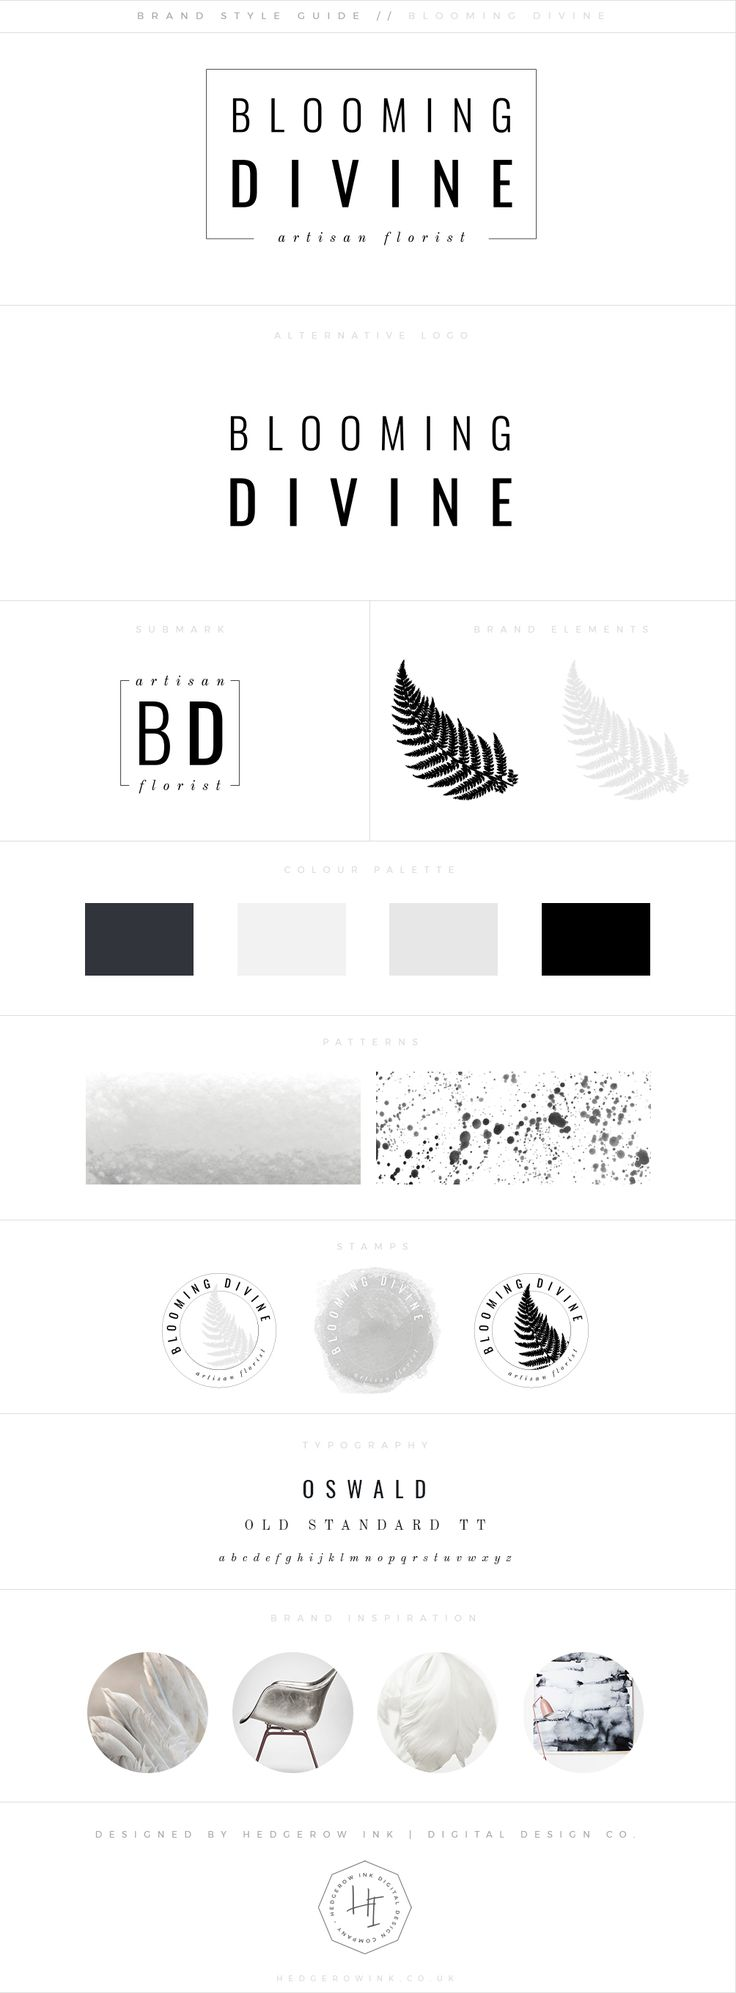 Hedgerow Ink | Digital Design Company | Web design & Branding for Female Entrepreneurs